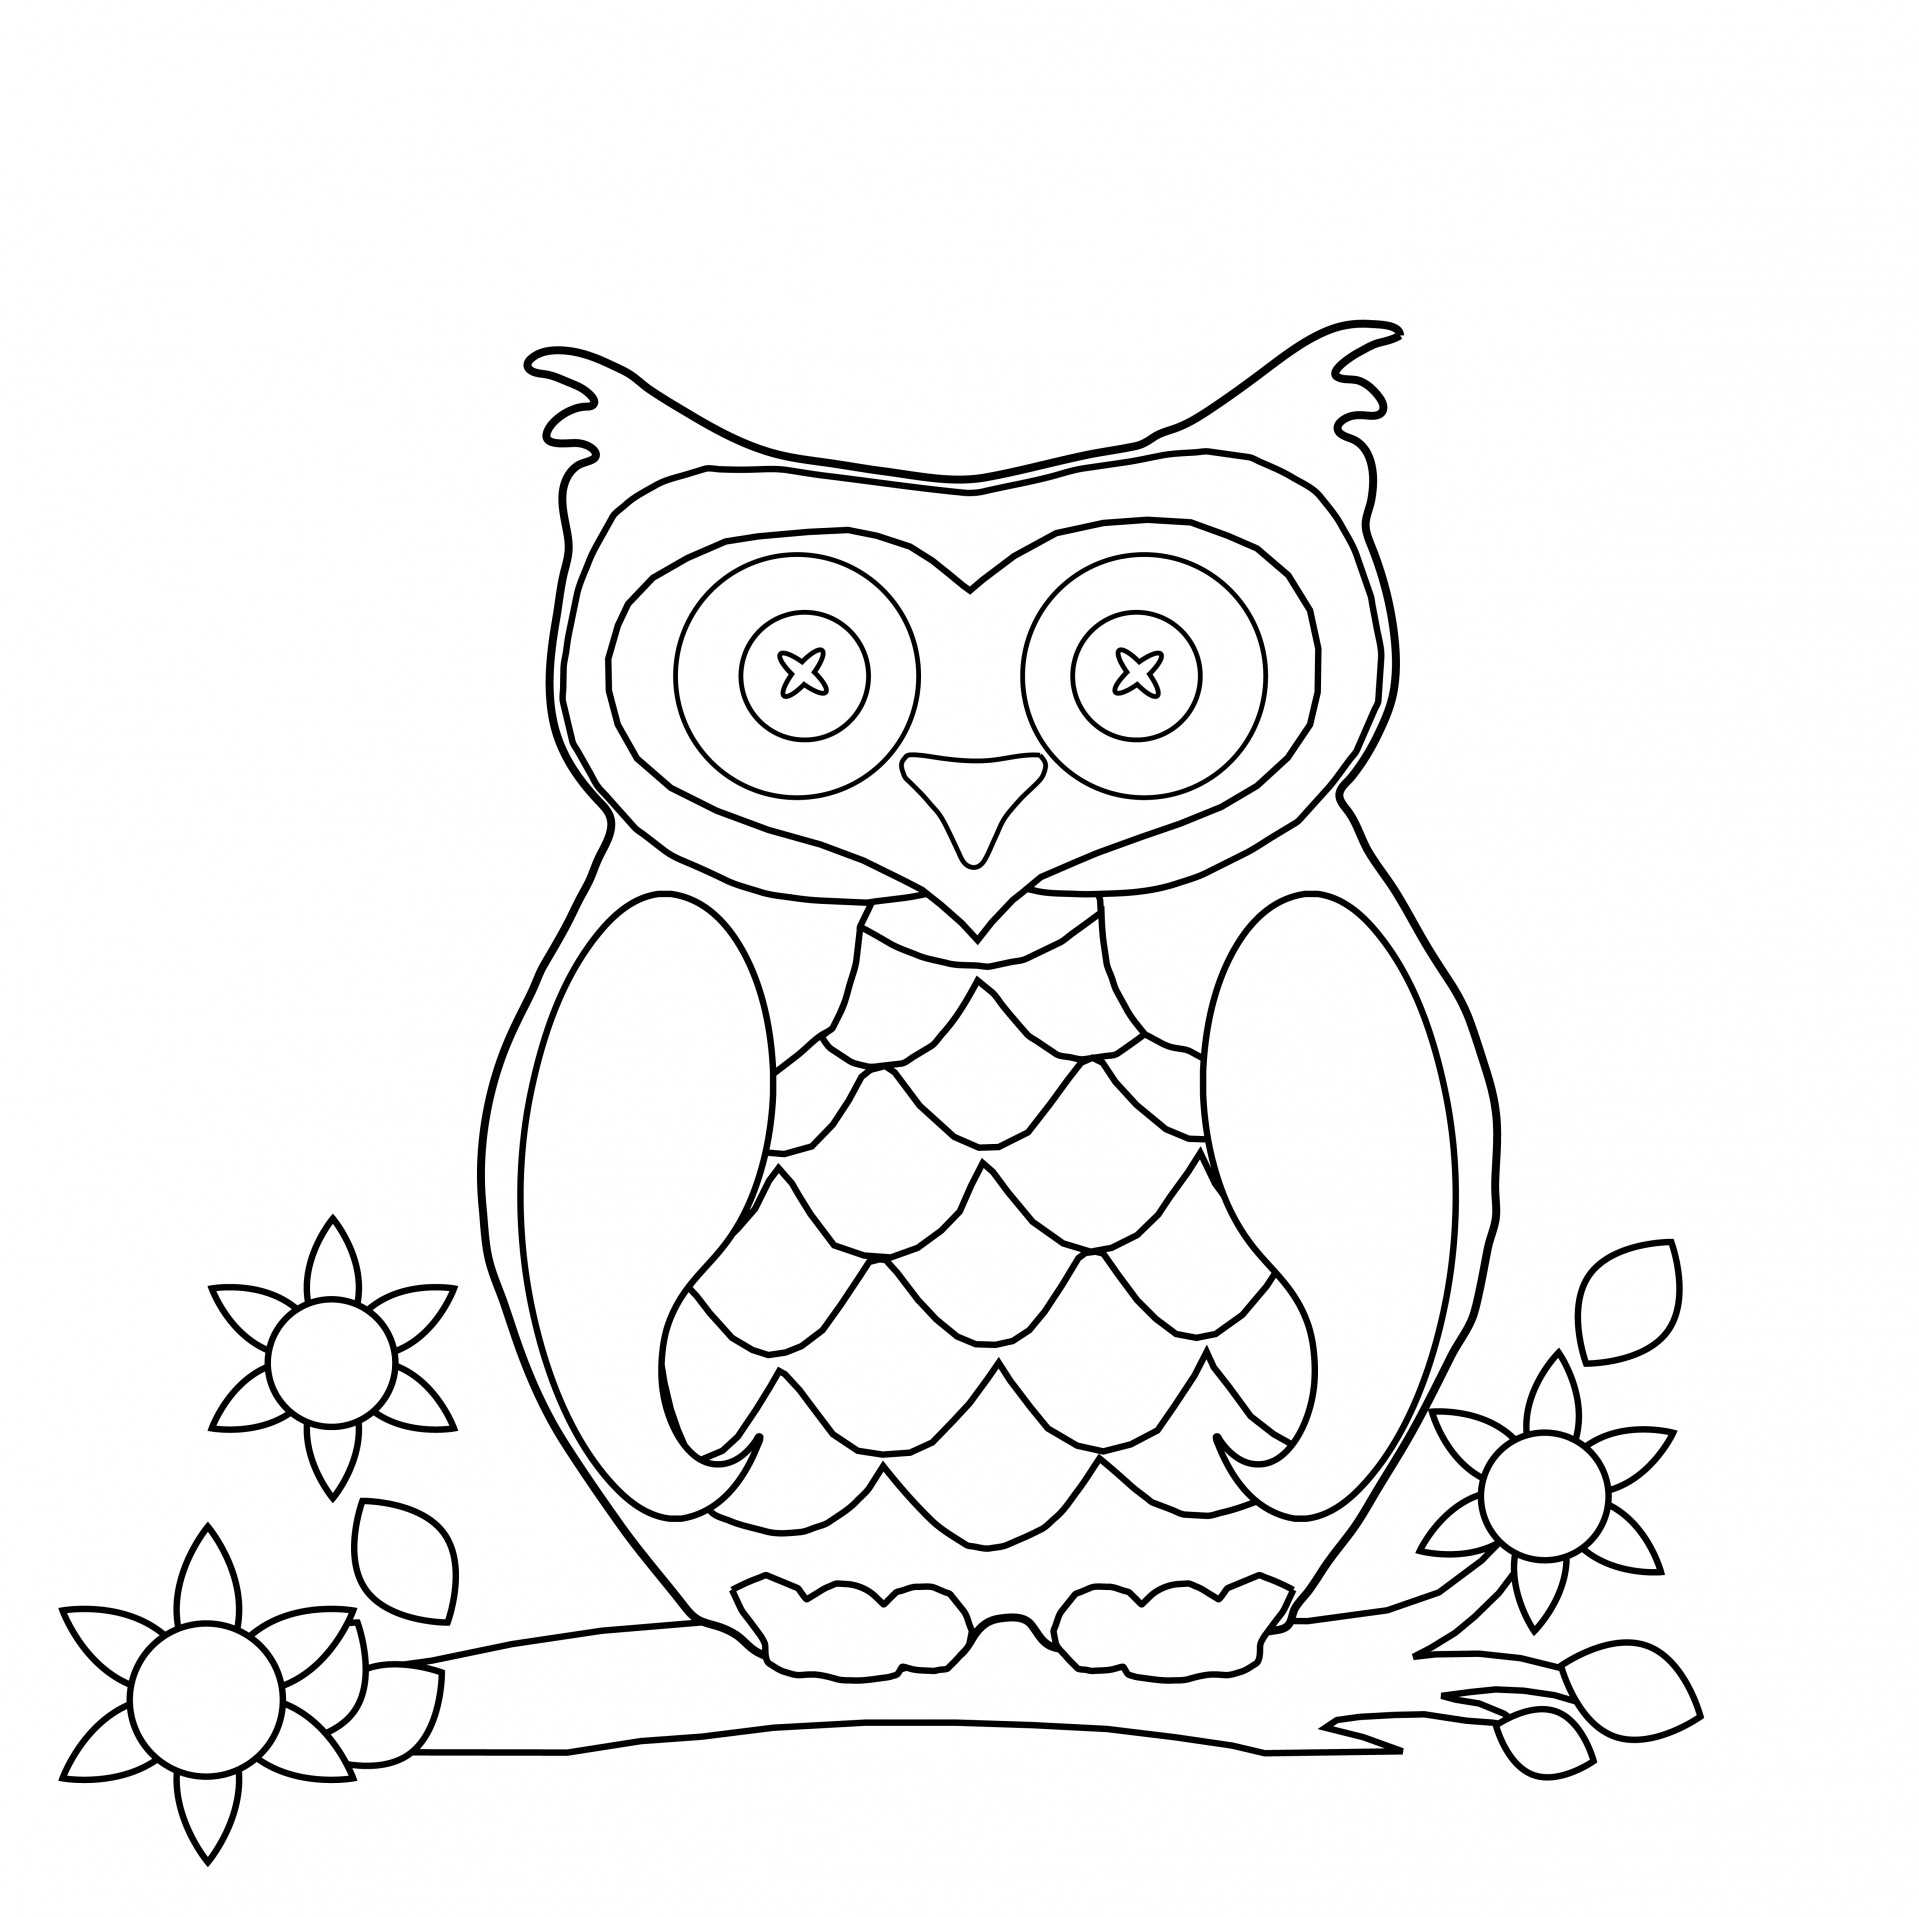 coloring for kids easy easy coloring pages best coloring pages for kids easy kids coloring for